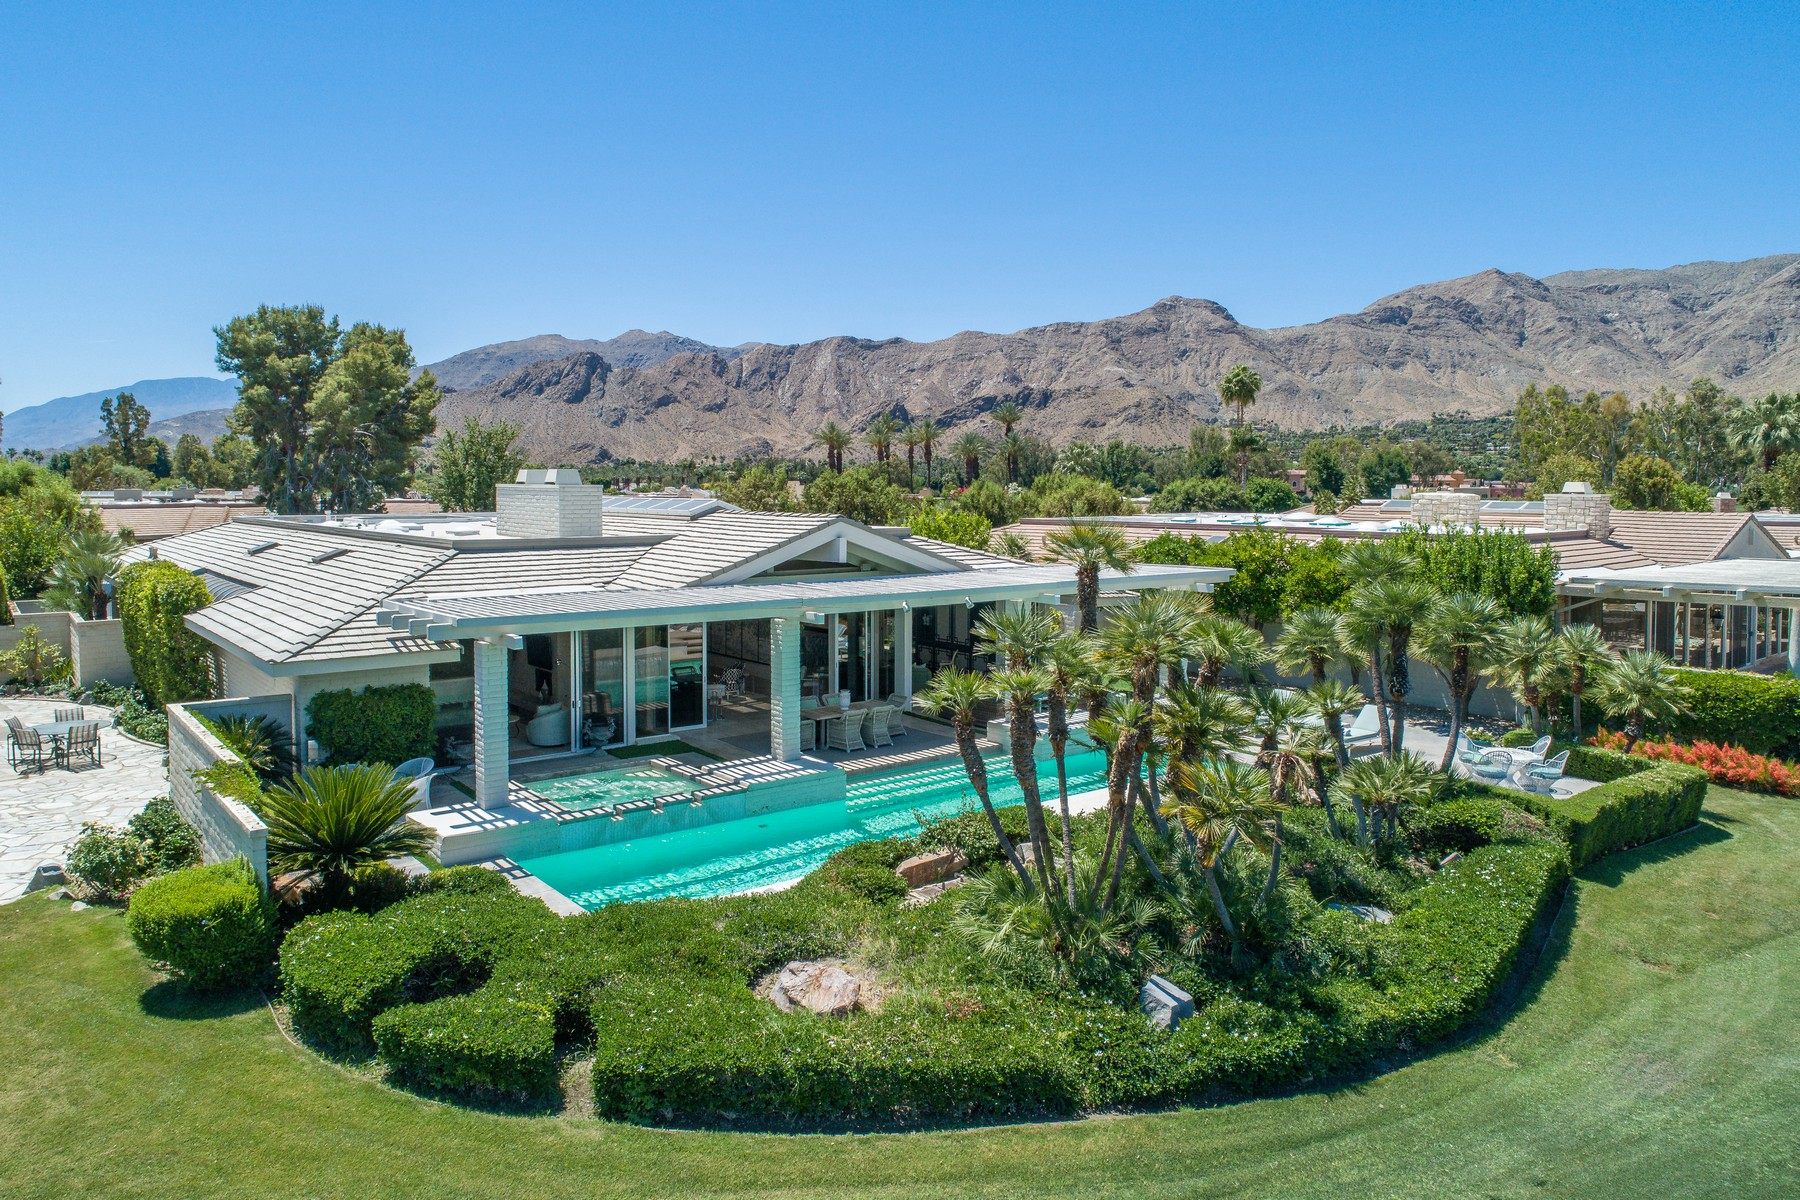 Single Family Homes for Sale at 2 Regency Drive Rancho Mirage, California 92270 United States